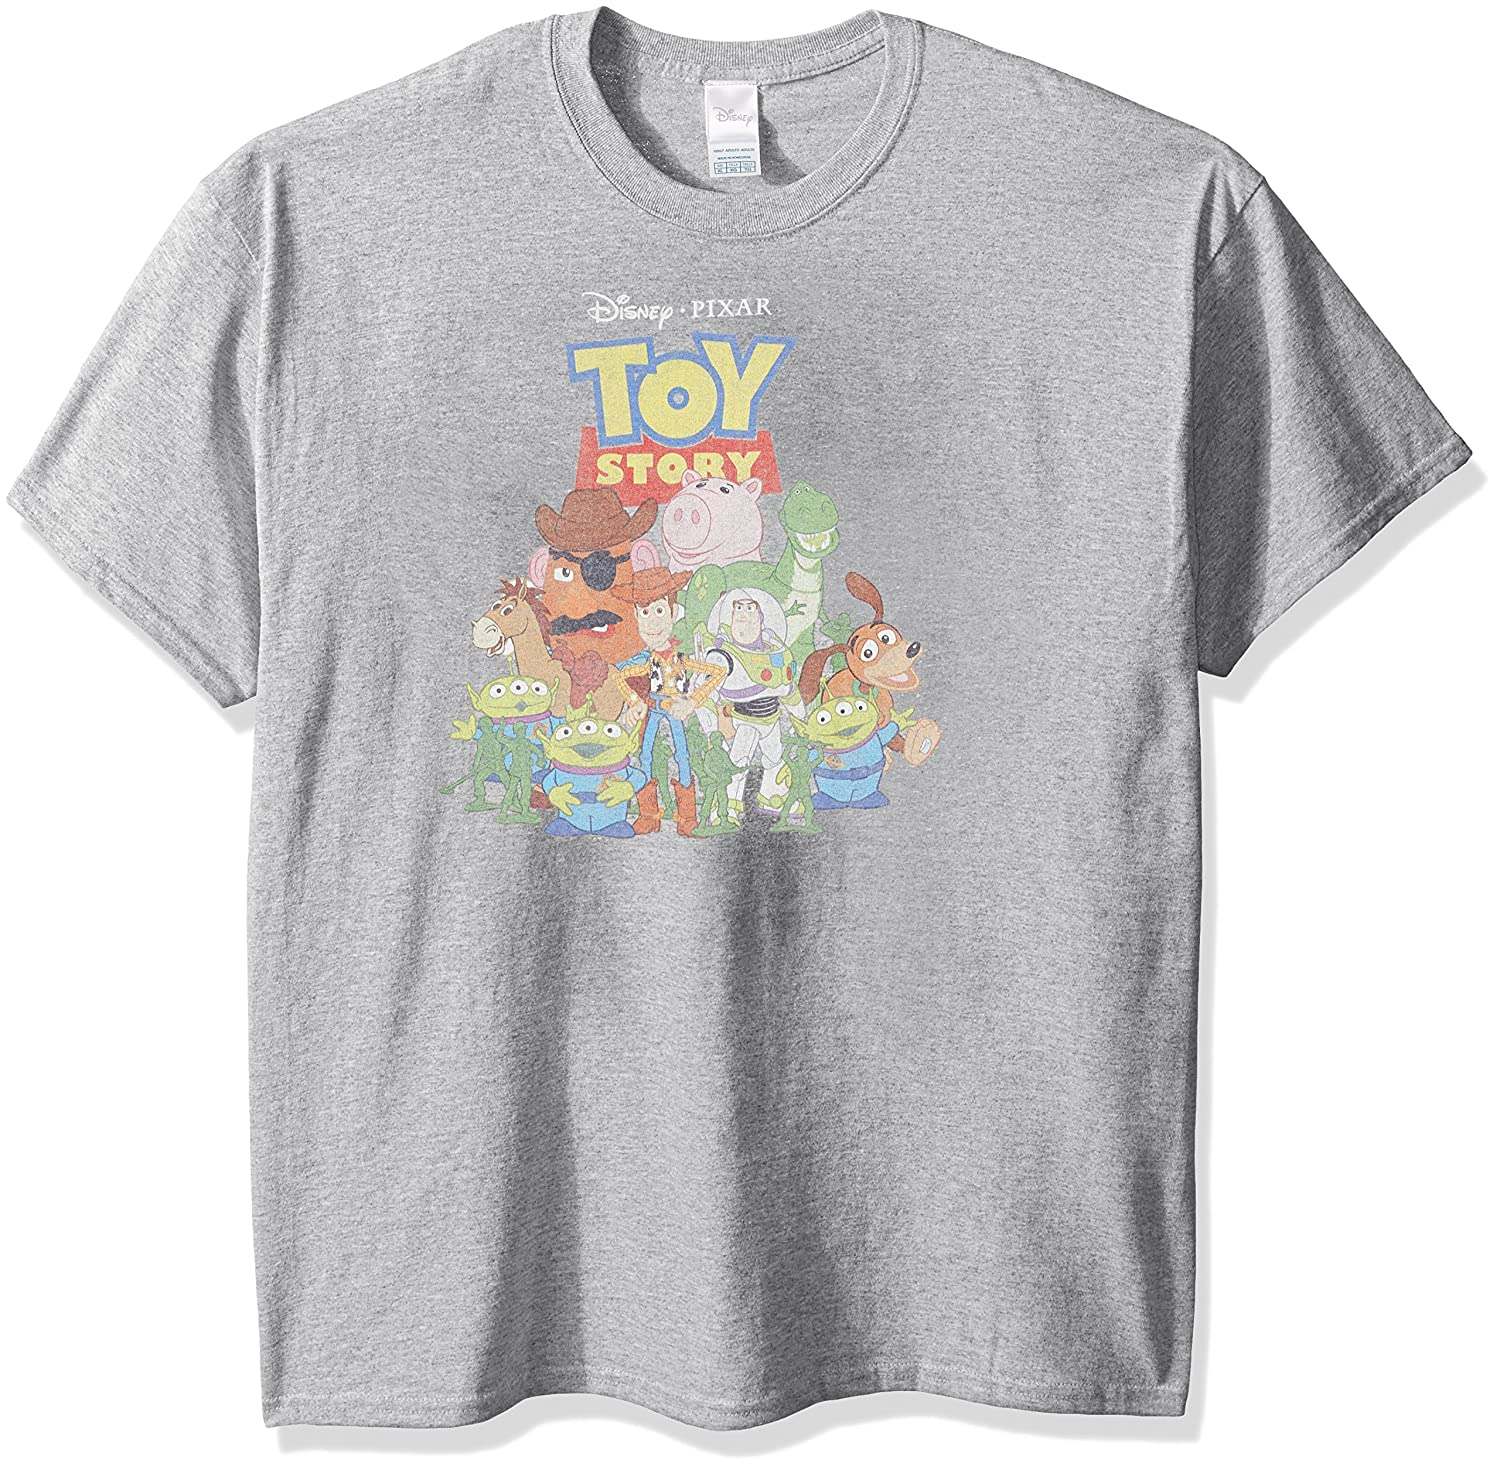 Clothing & Accessories Disney Mens Toy Story T-Shirt Freeze Print on